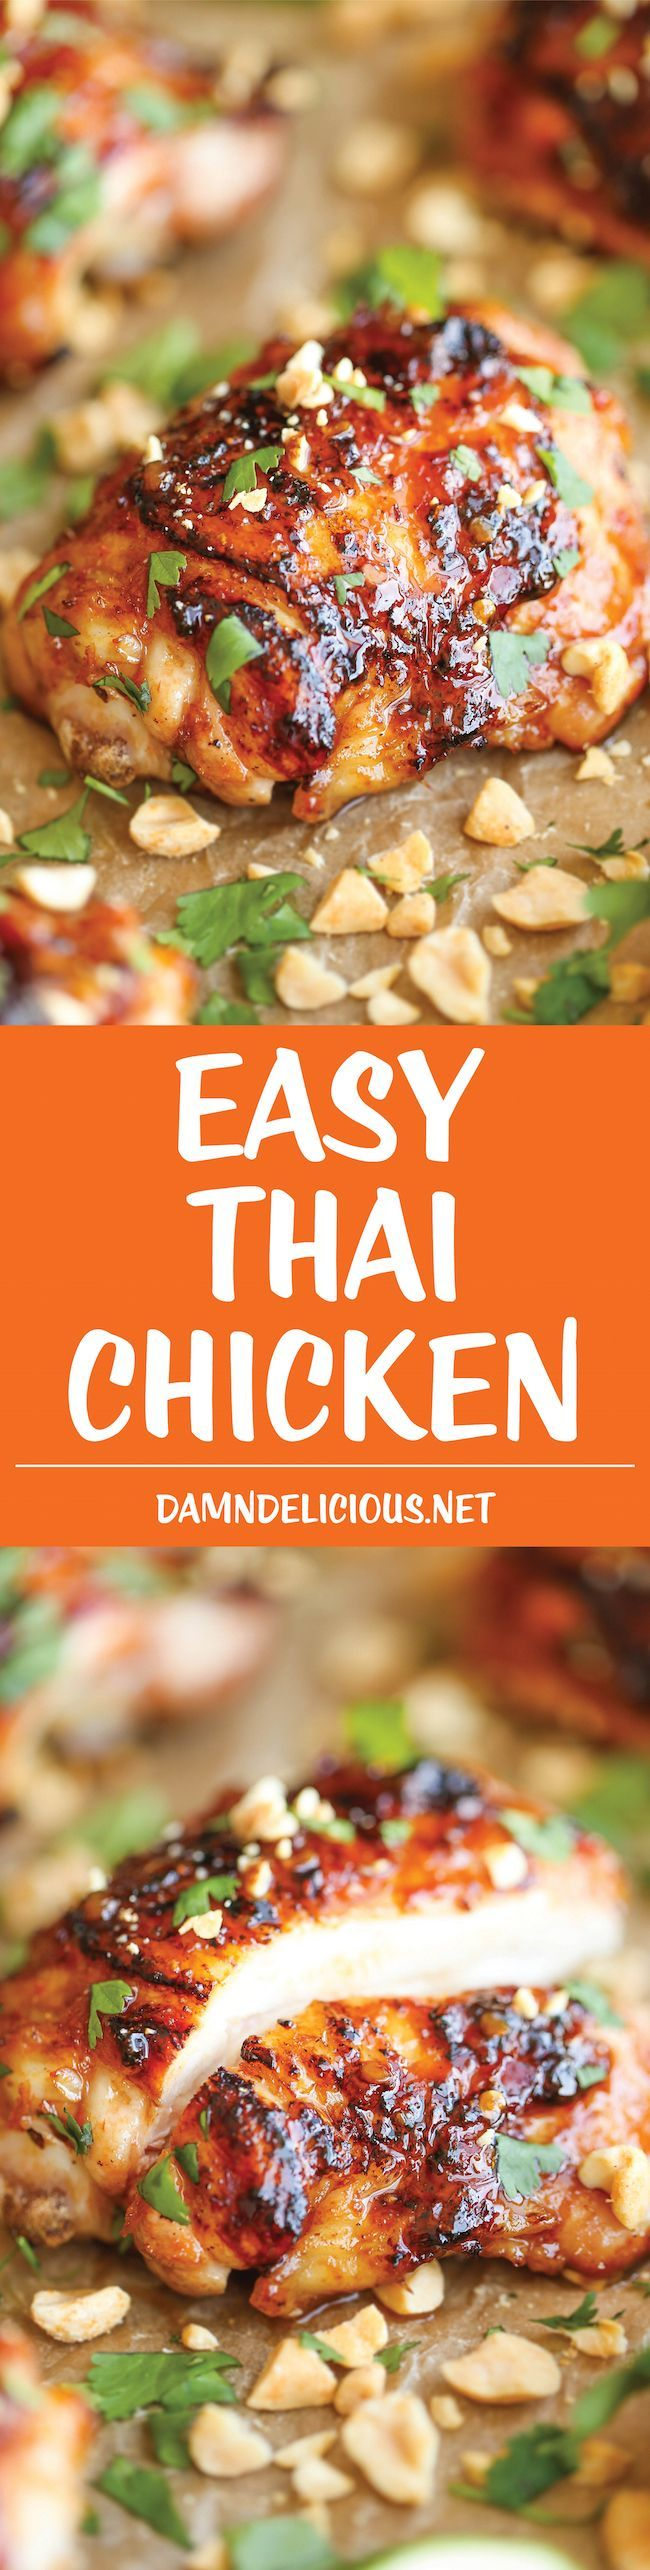 Easy Thai Chicken - So sticky, so tender, so moist and just packed with so much flavor. And it's an easy peasy weeknight meal, made in 30 minutes or less!